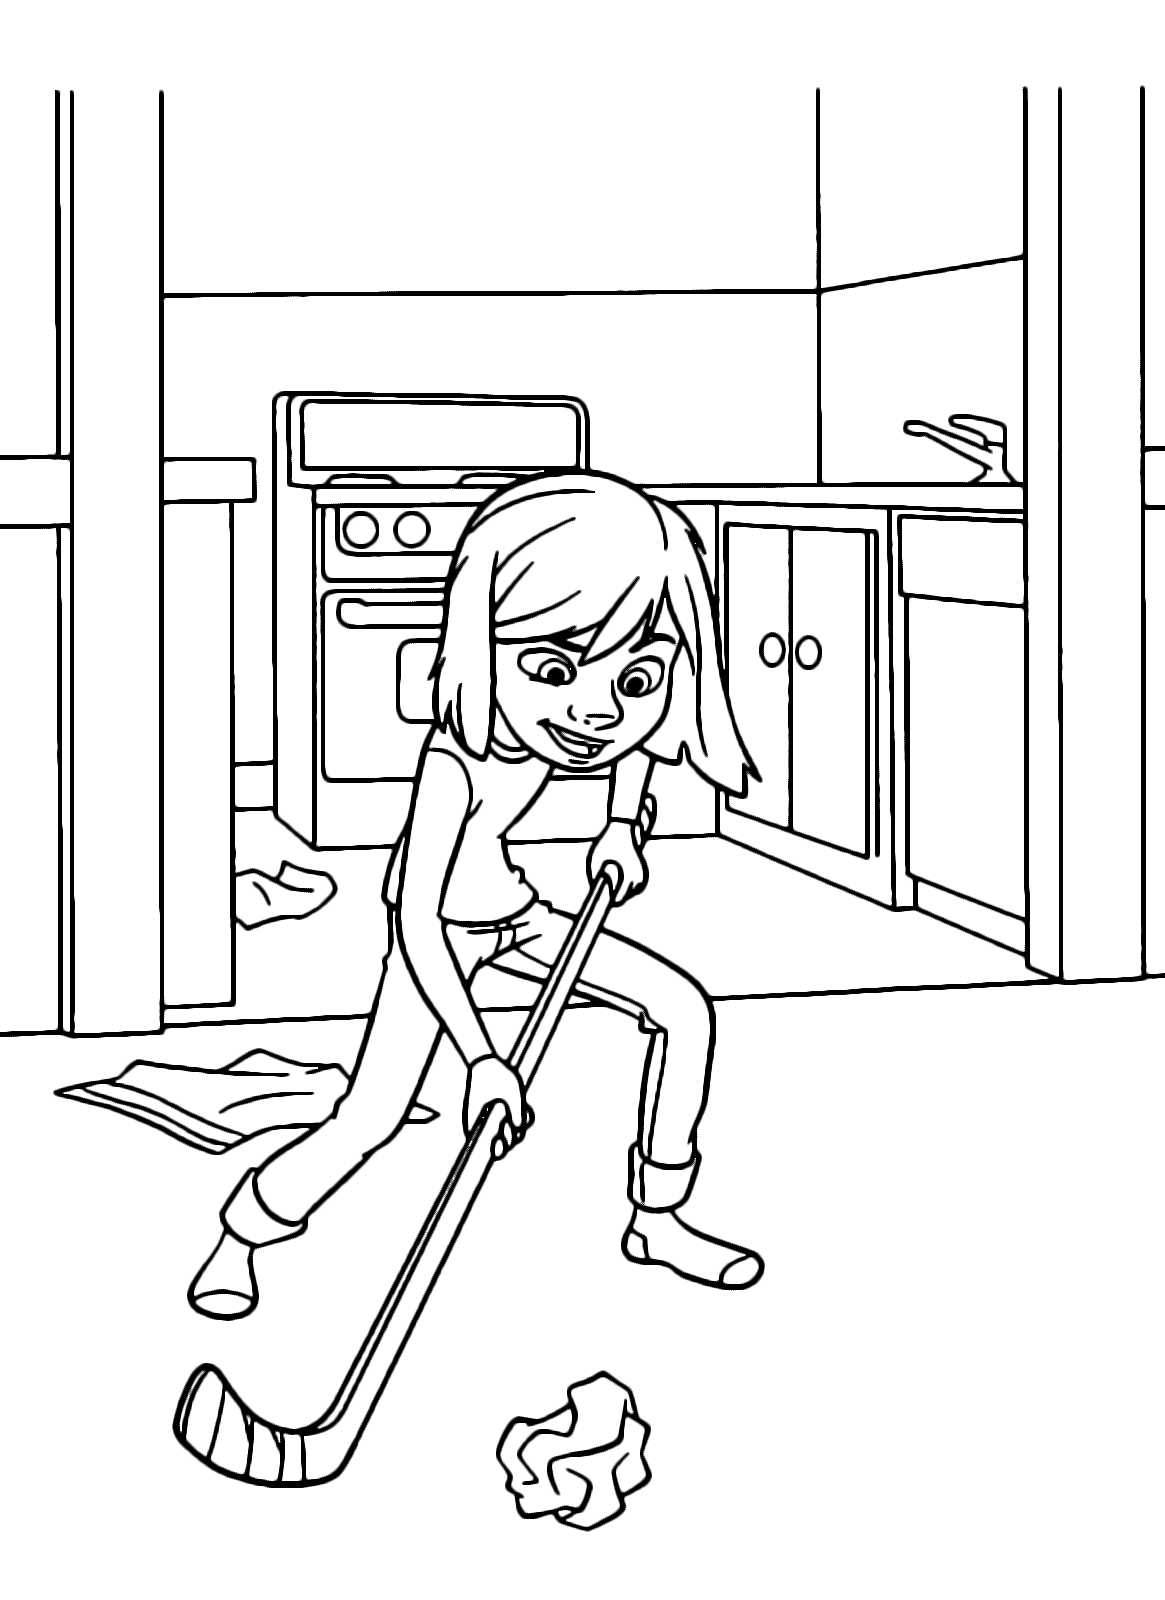 Inside Out Coloring Page Riley Plays Hockey In The New House With A Paper Ball